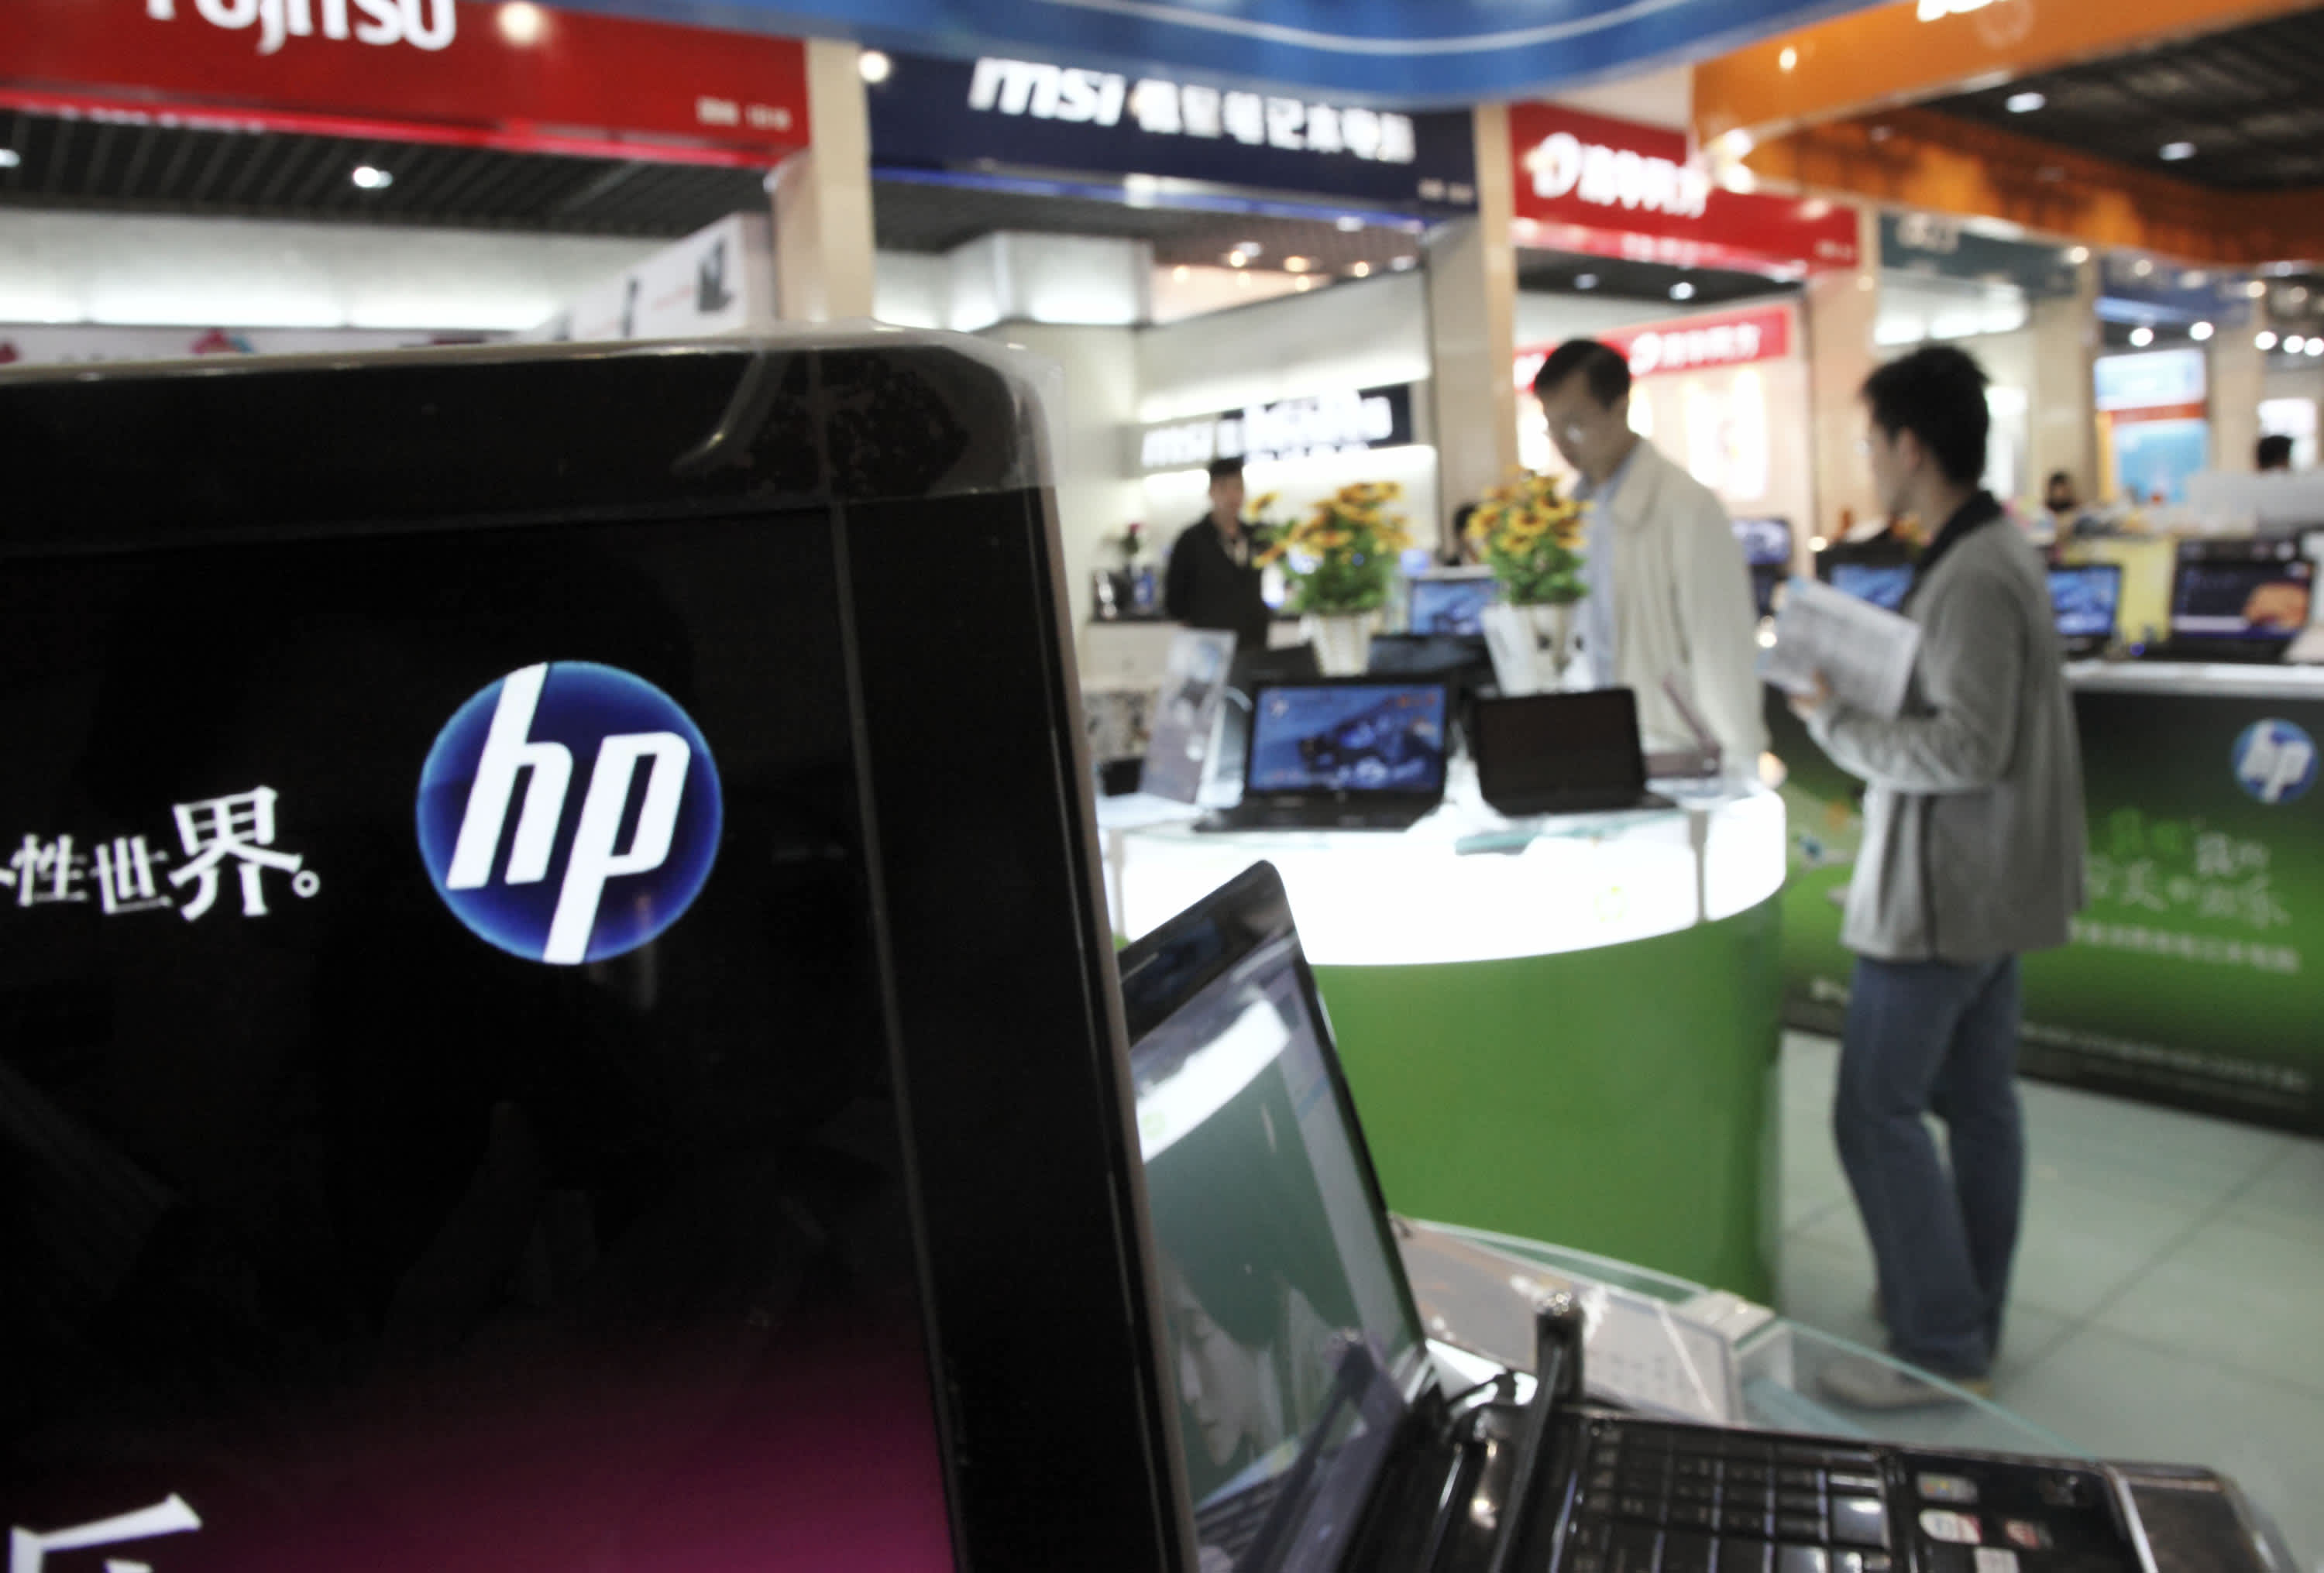 Xerox is reportedly planning a cash-and-stock offer for HP